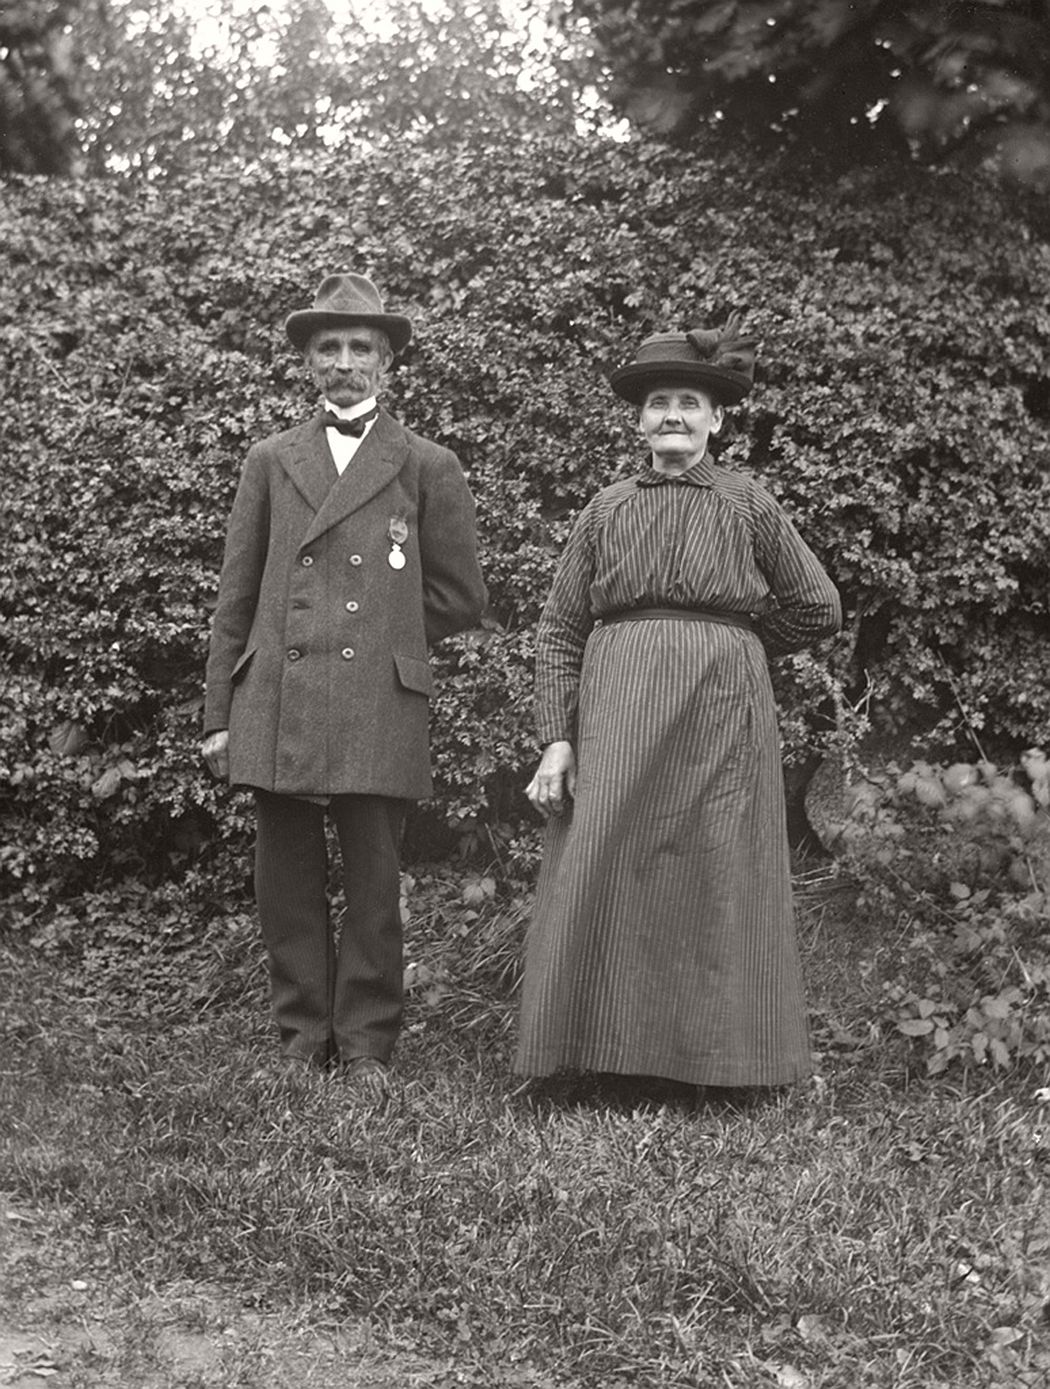 Kyrkvaktmästare August Käl and his wife from Liljeholmen